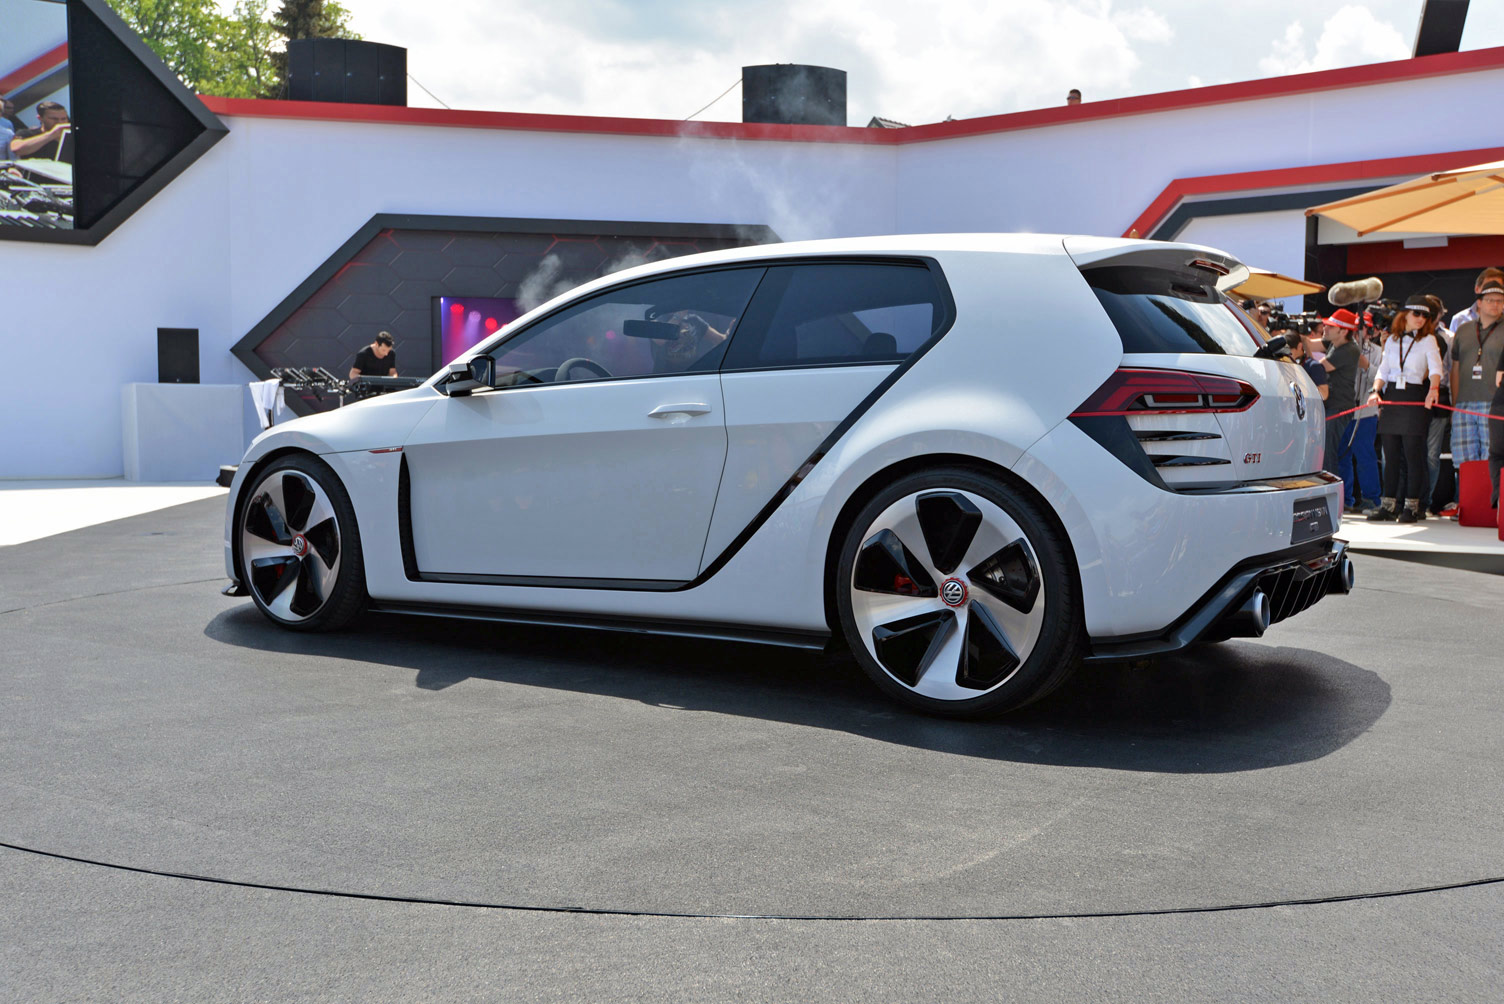 volkswagen-design-vision-gti-worthersee-021